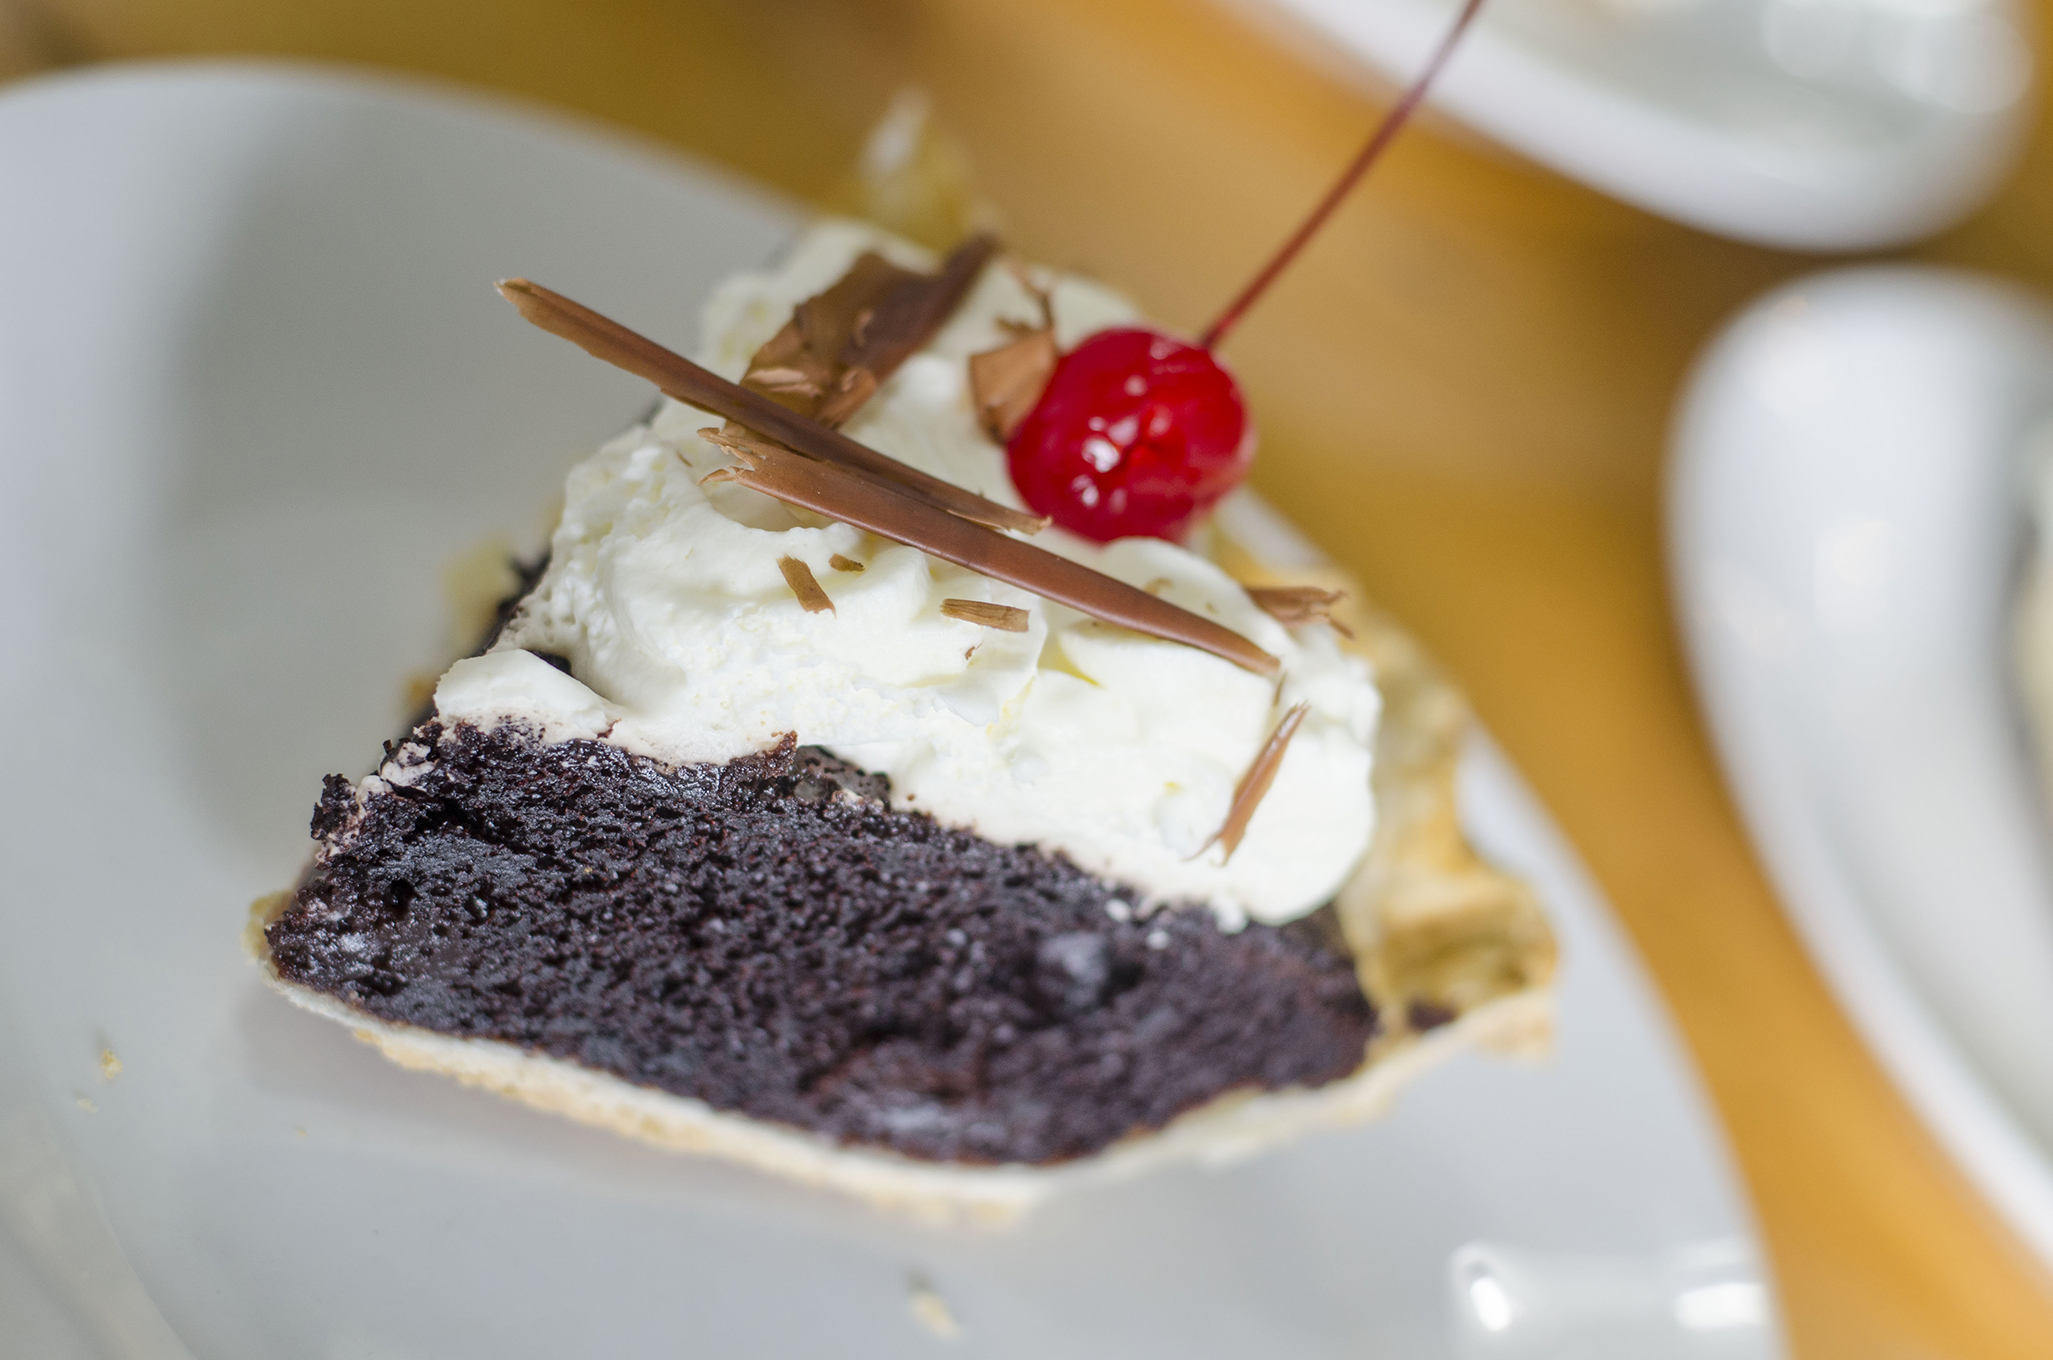 The Black Forest Pie from Riverside Pie Cafe in Windsor, Ontario.